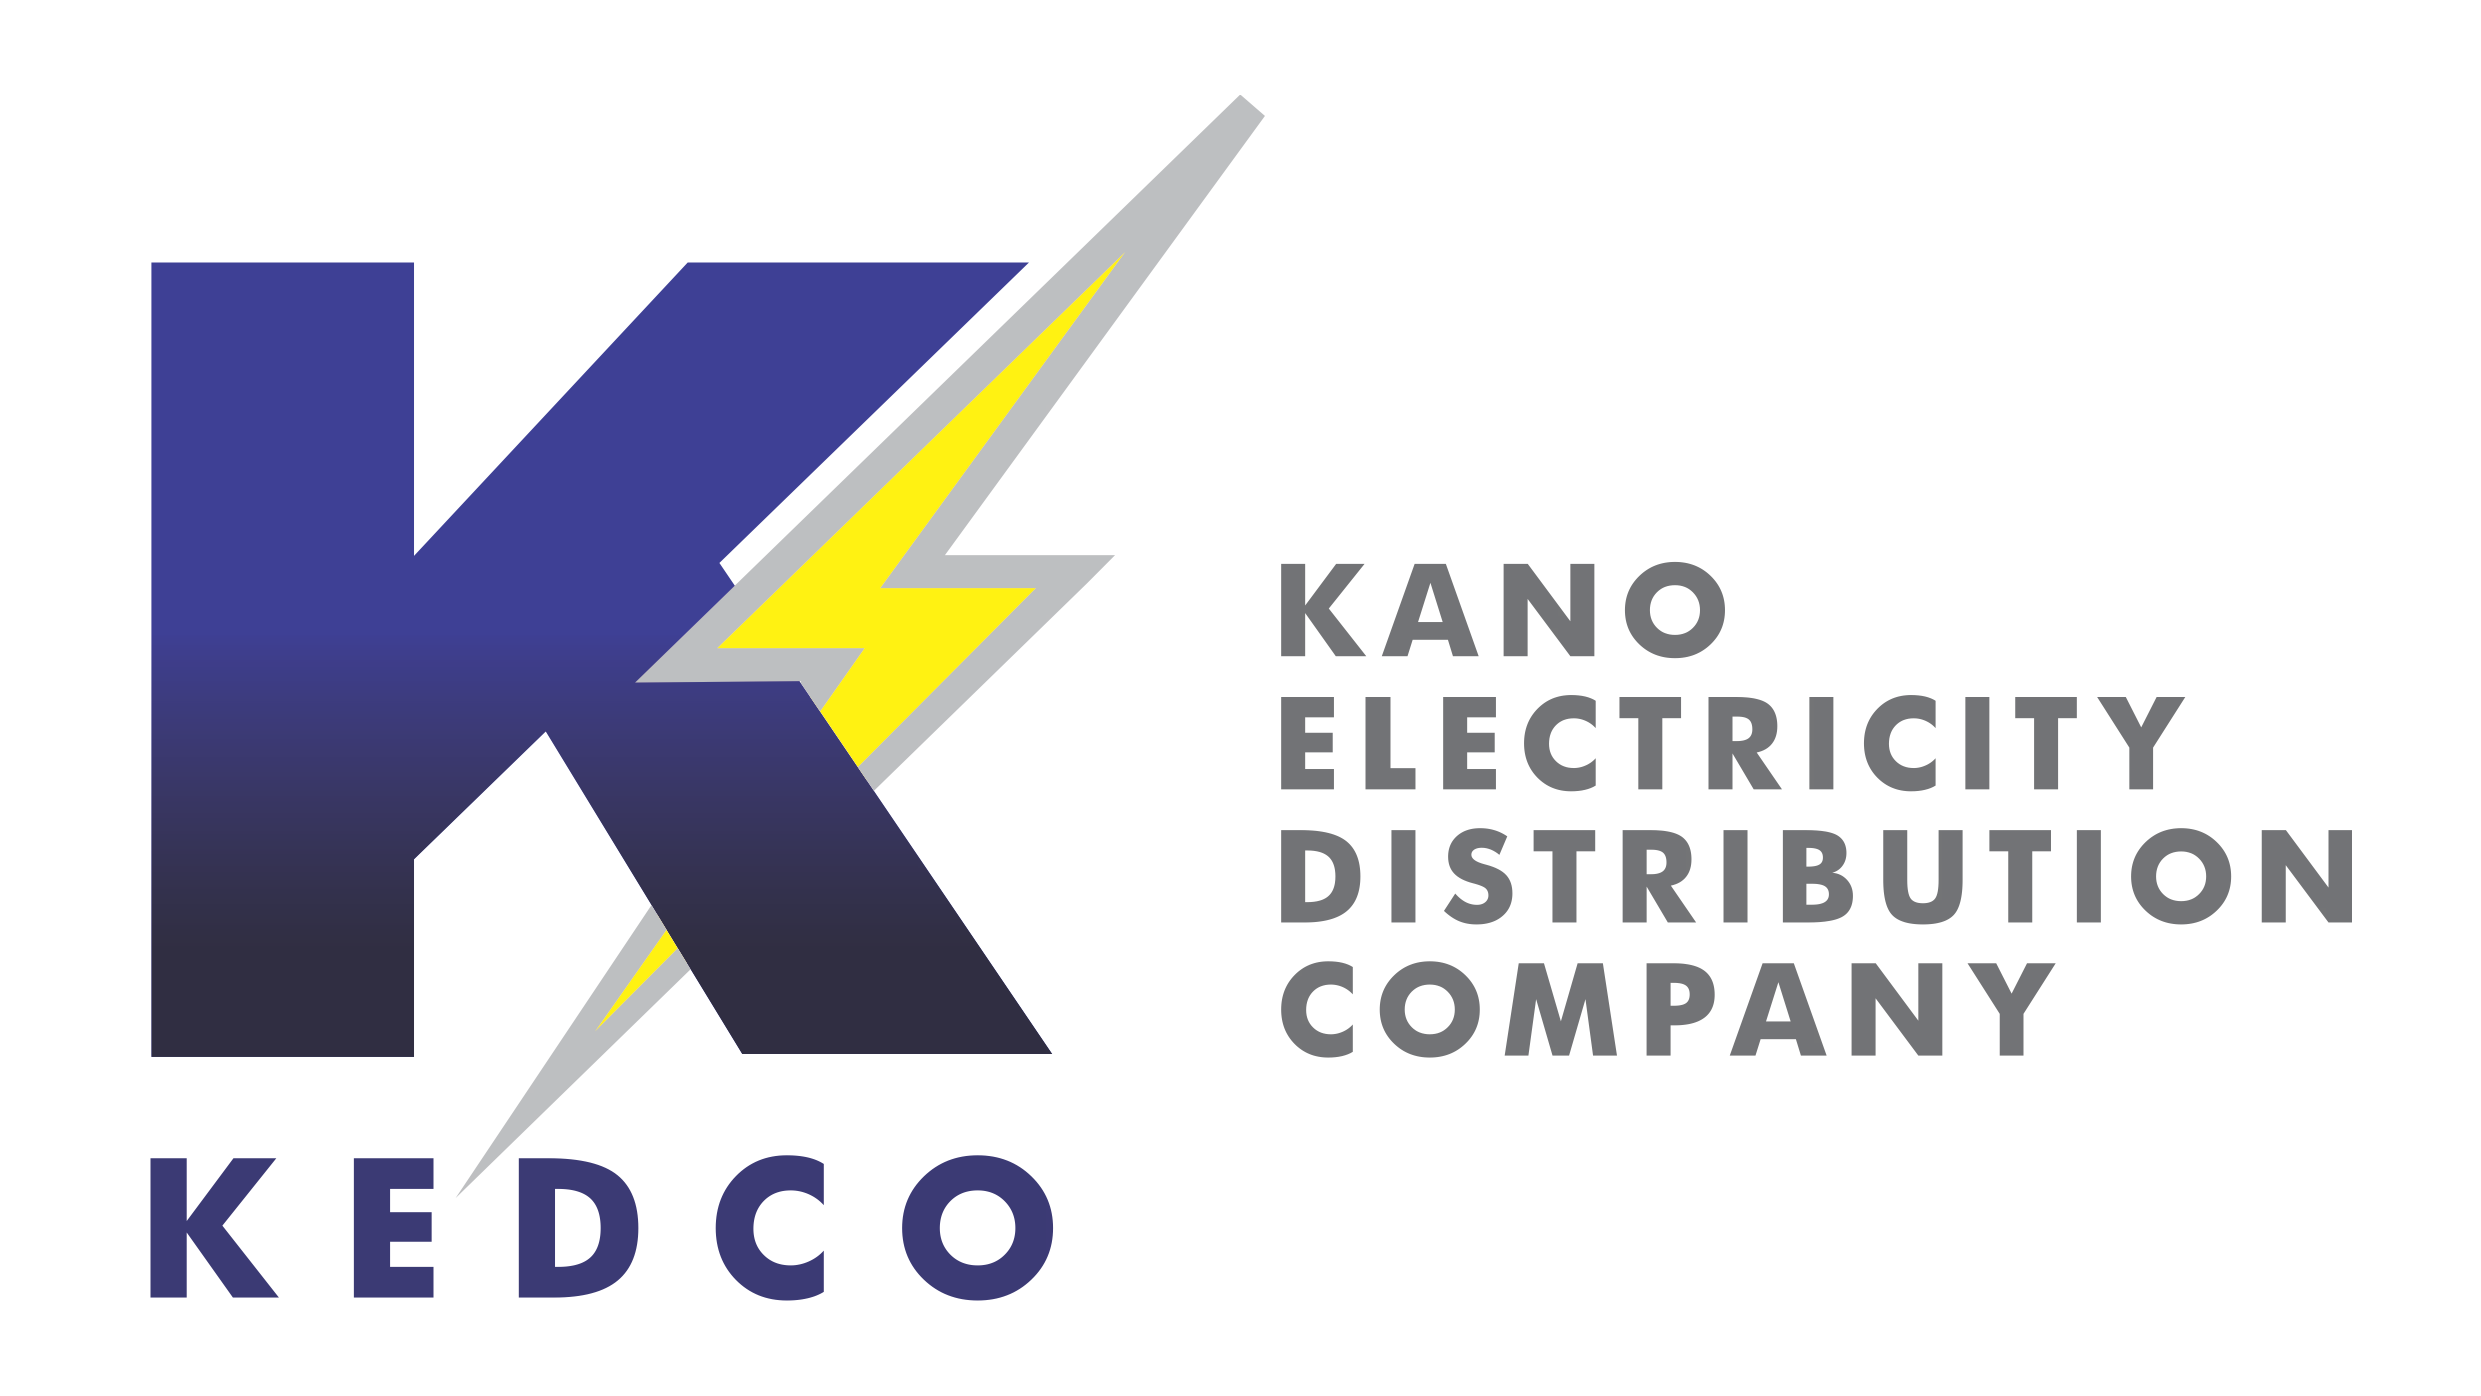 Payment for Kano Electricity (KEDCO)